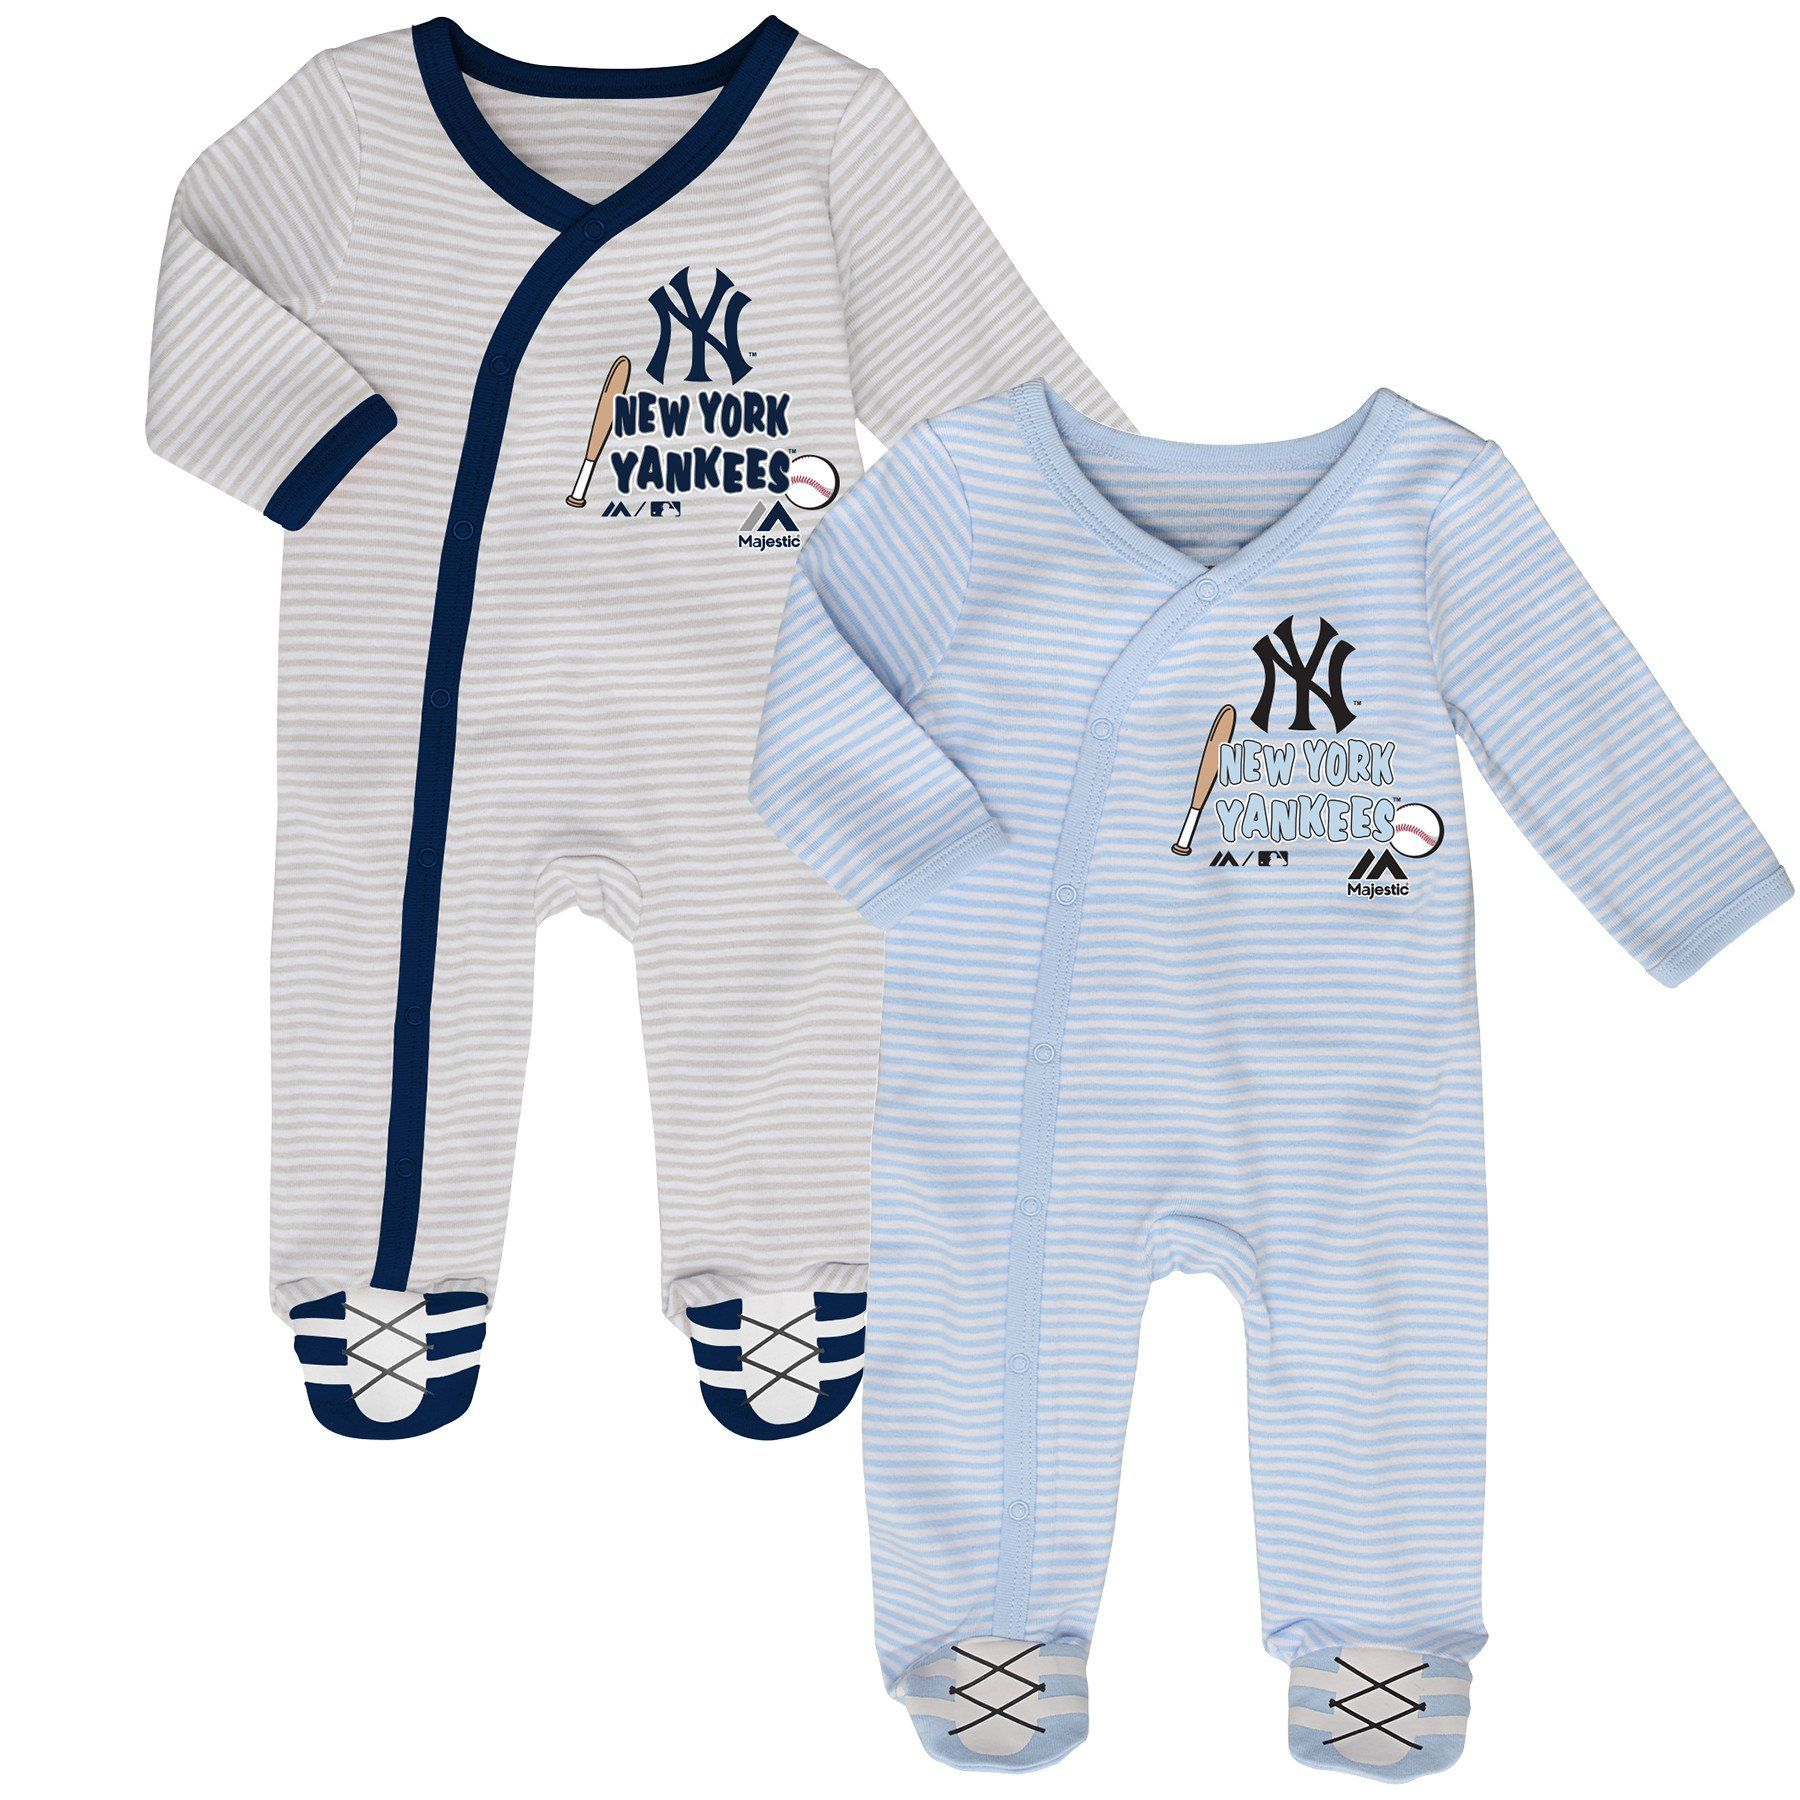 Yankees Baby Sleepers Our Yankees Classic Infant Gameday Coverall